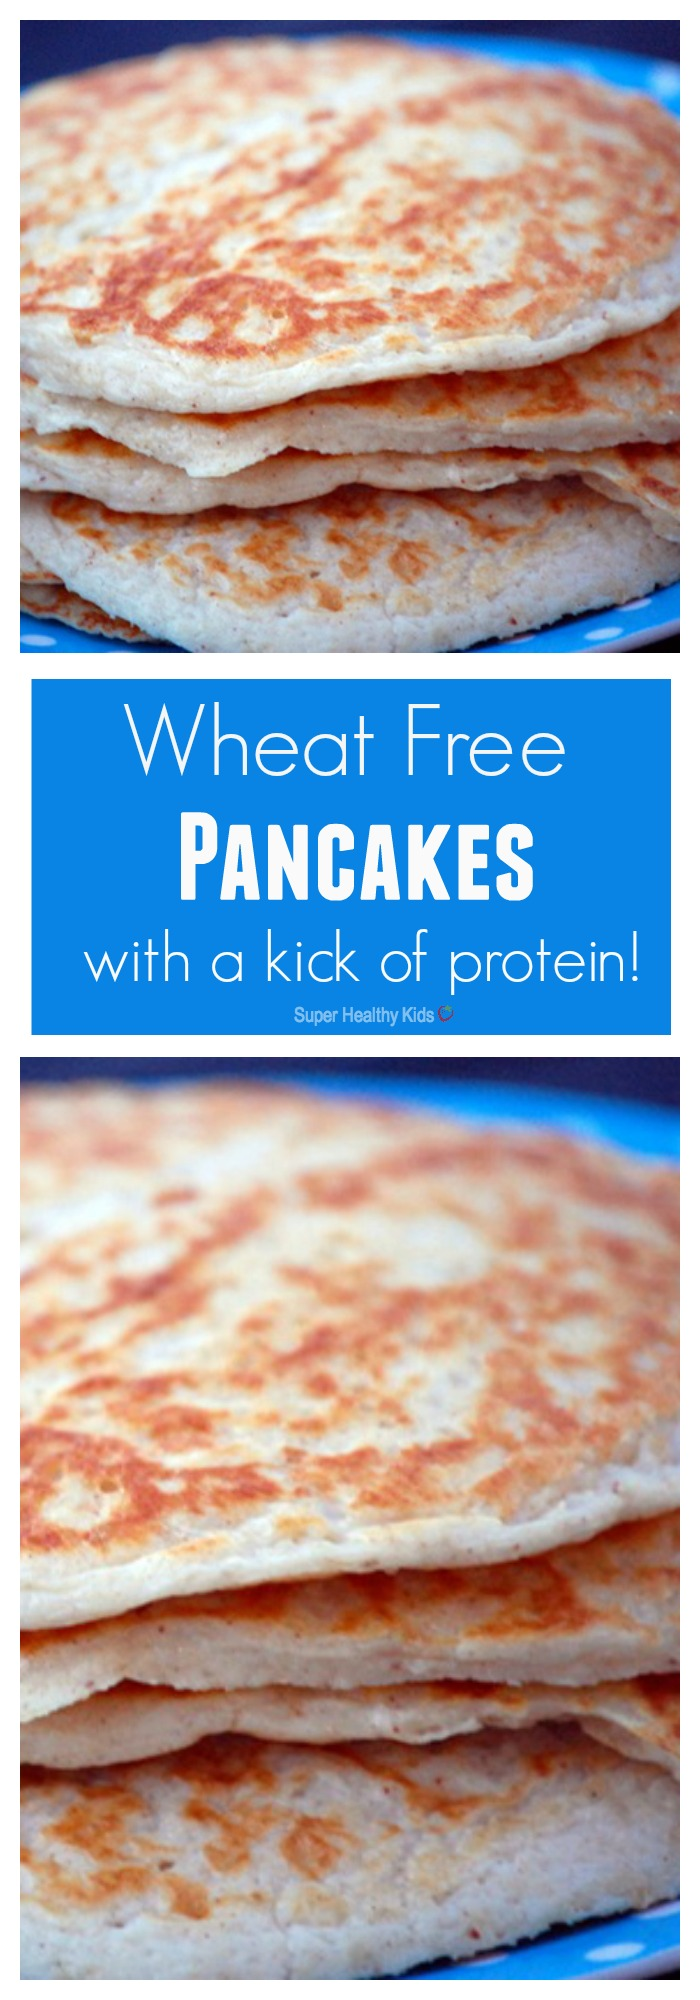 Wheat free Pancakes with a kick of protein! Our whole family loves these pancakes! http://www.superhealthykids.com/wheat-free-pancakes-with-a-kick-of-protein/